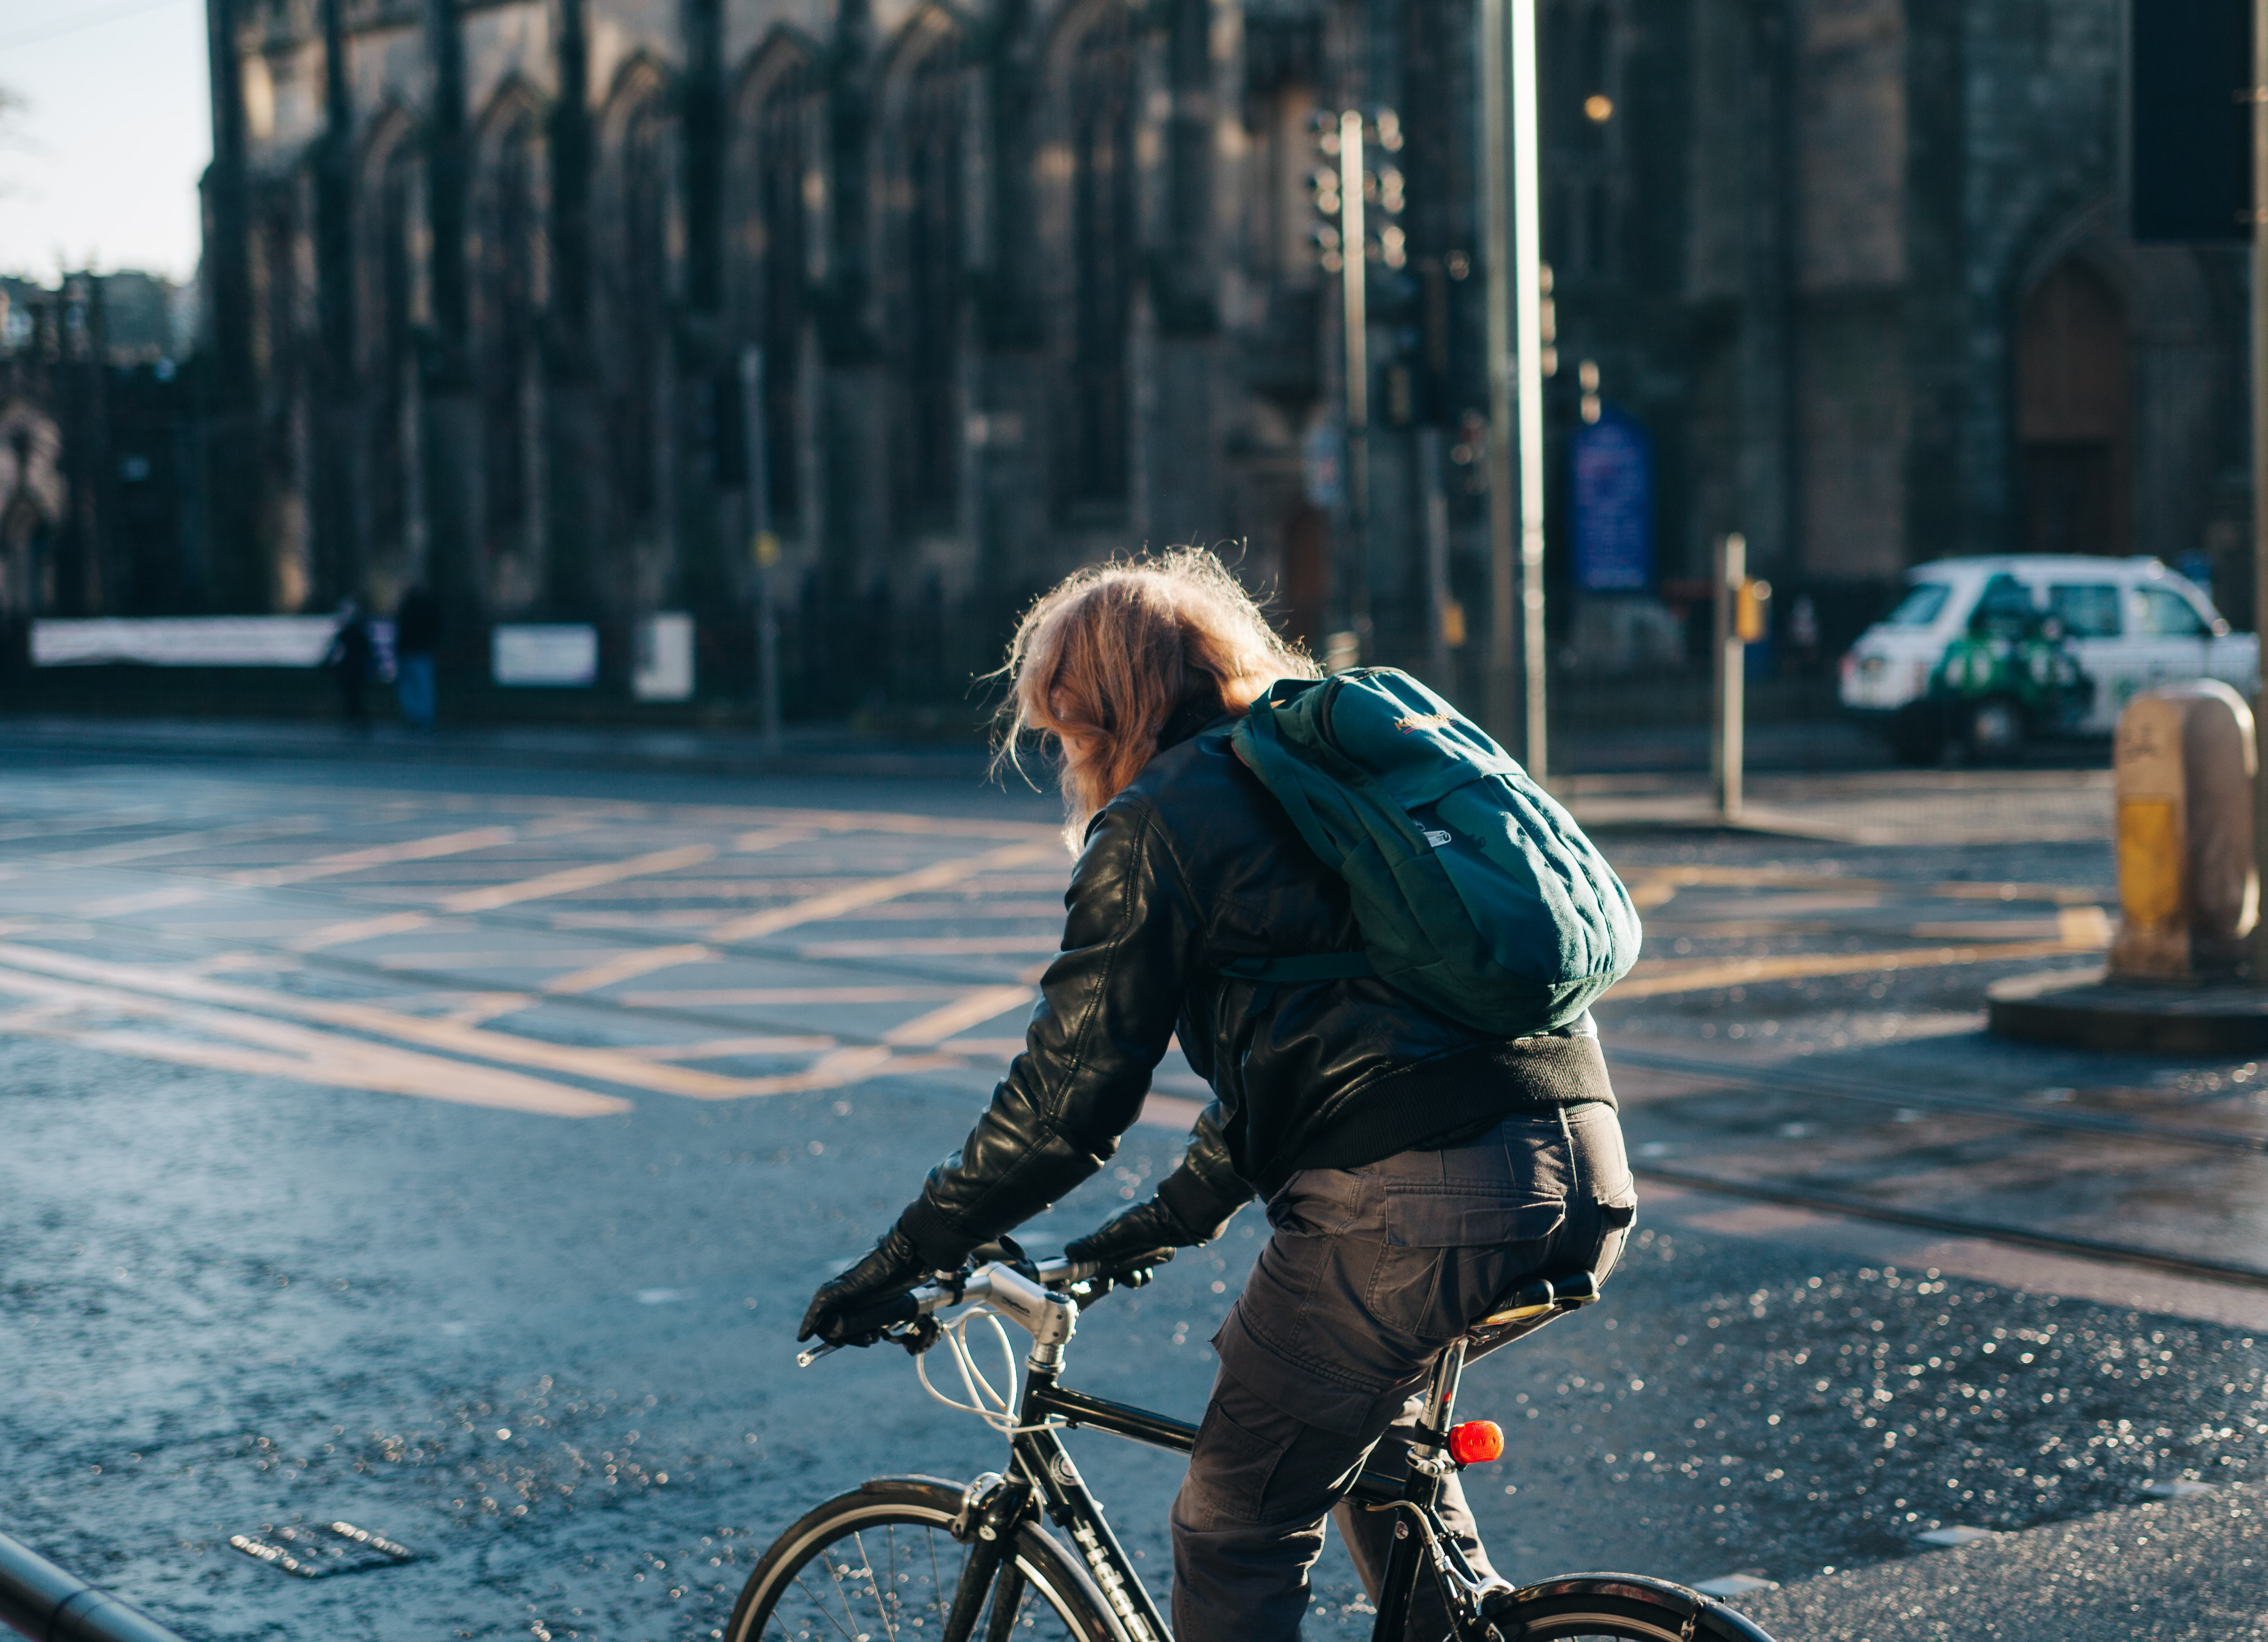 A person wearing a leather jacket and backpack riding a bicycle on a road in Edinburgh